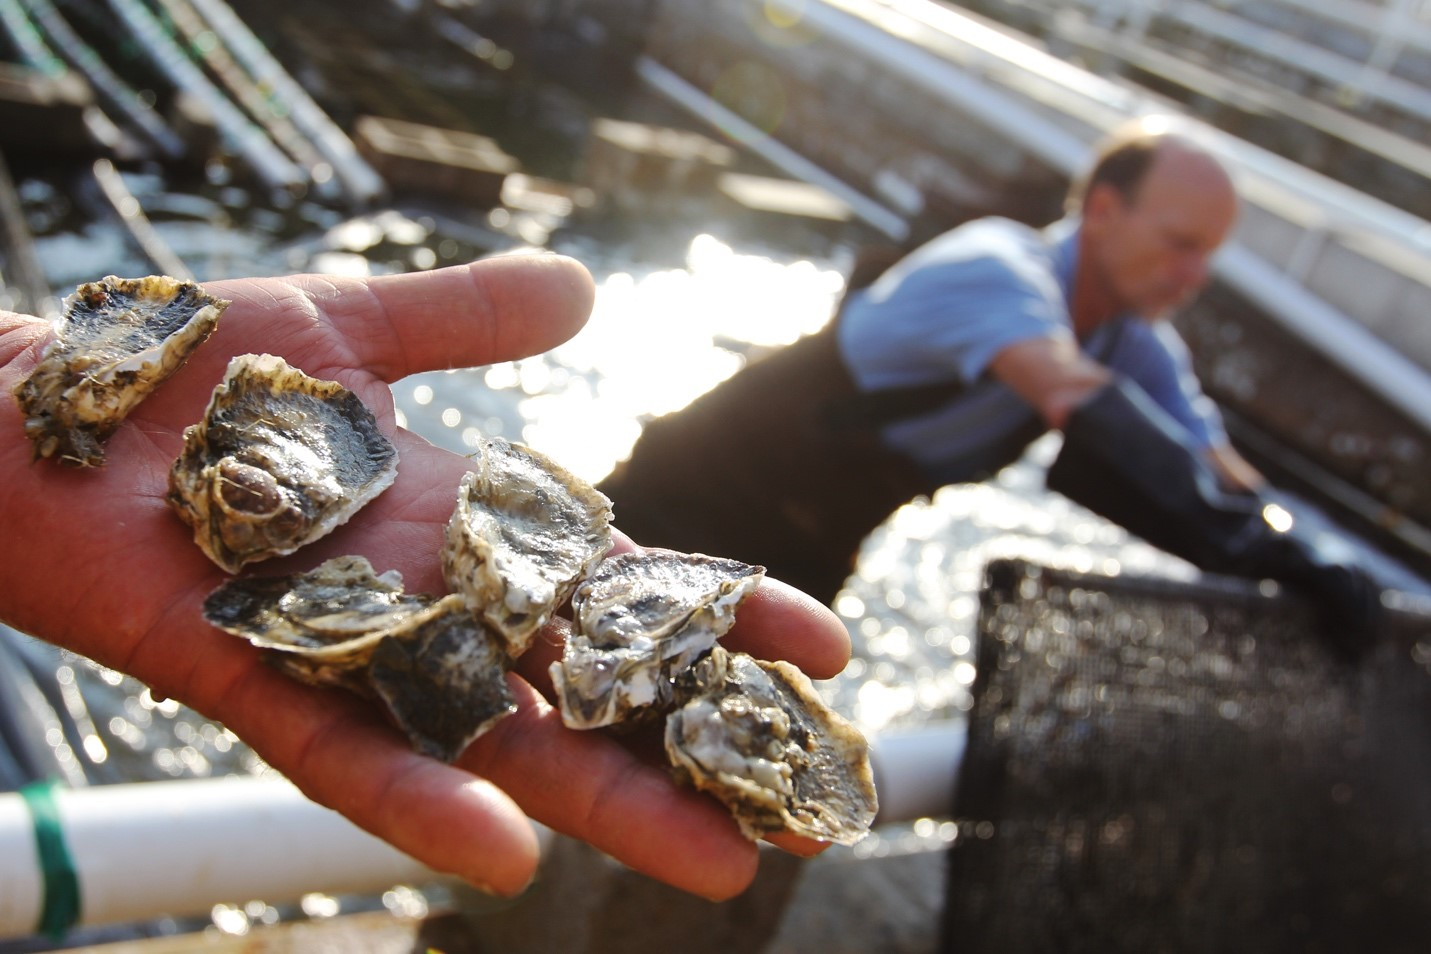 close-up of a fisherman's hand holding six fresh oysters